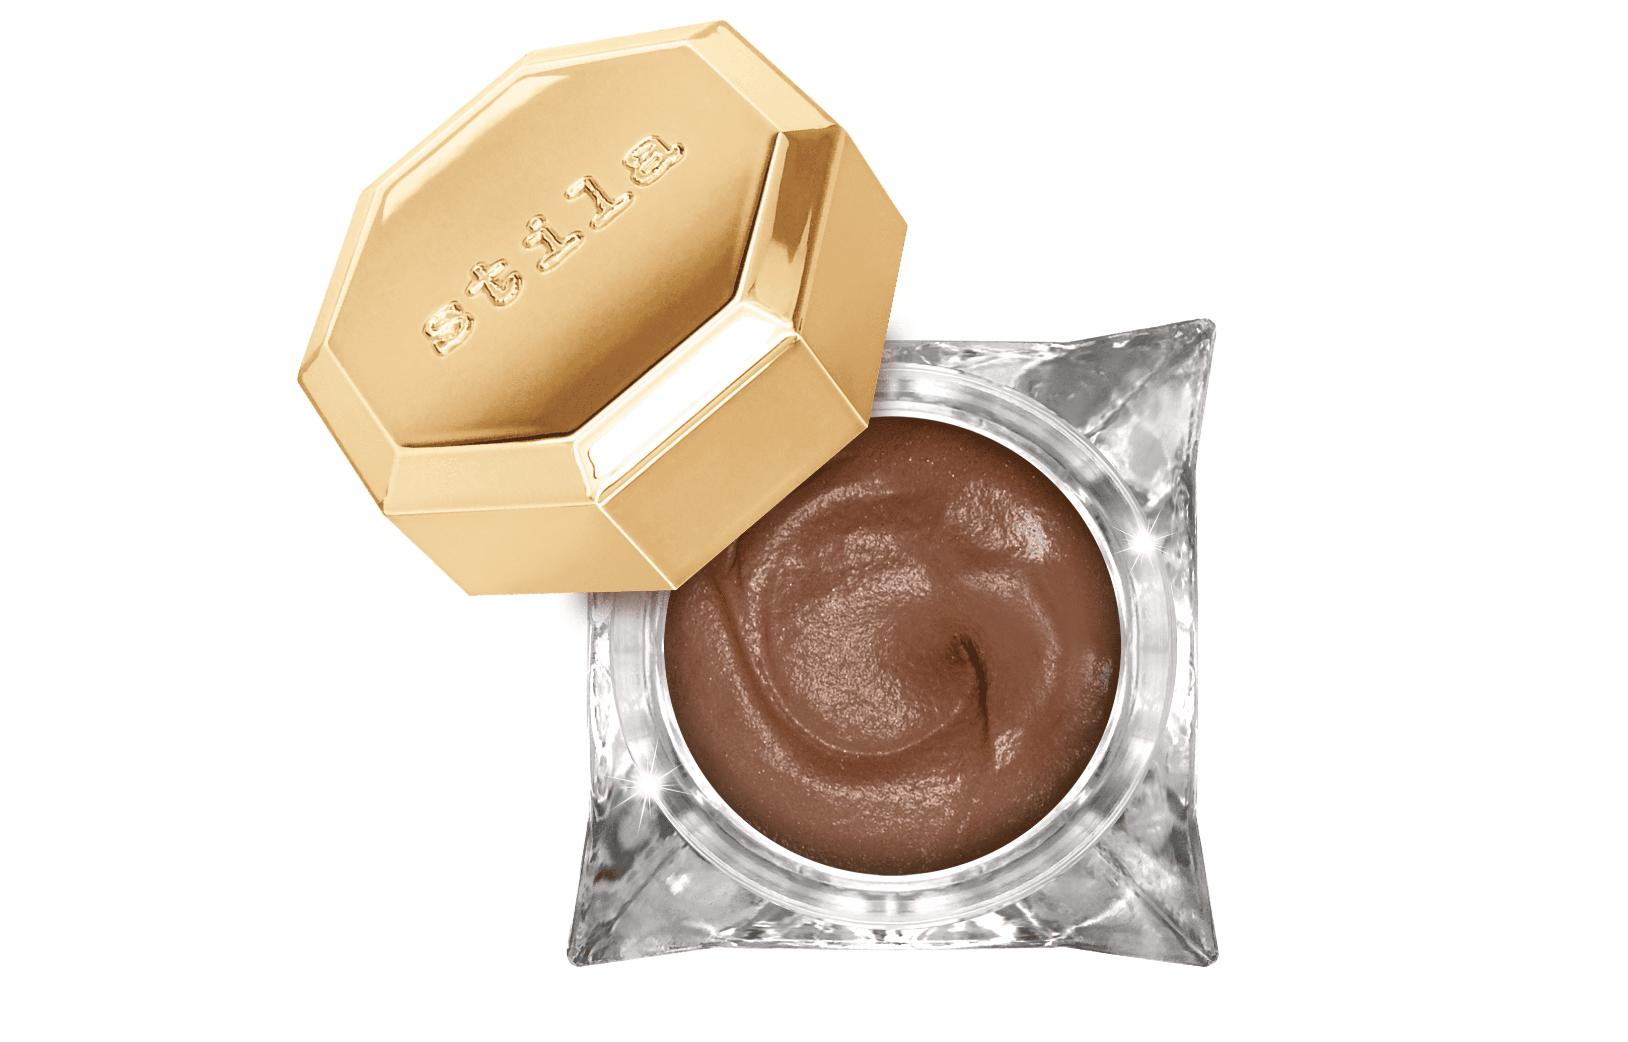 Stila Lingerie Souffle Skin Perfecting Color 8.0